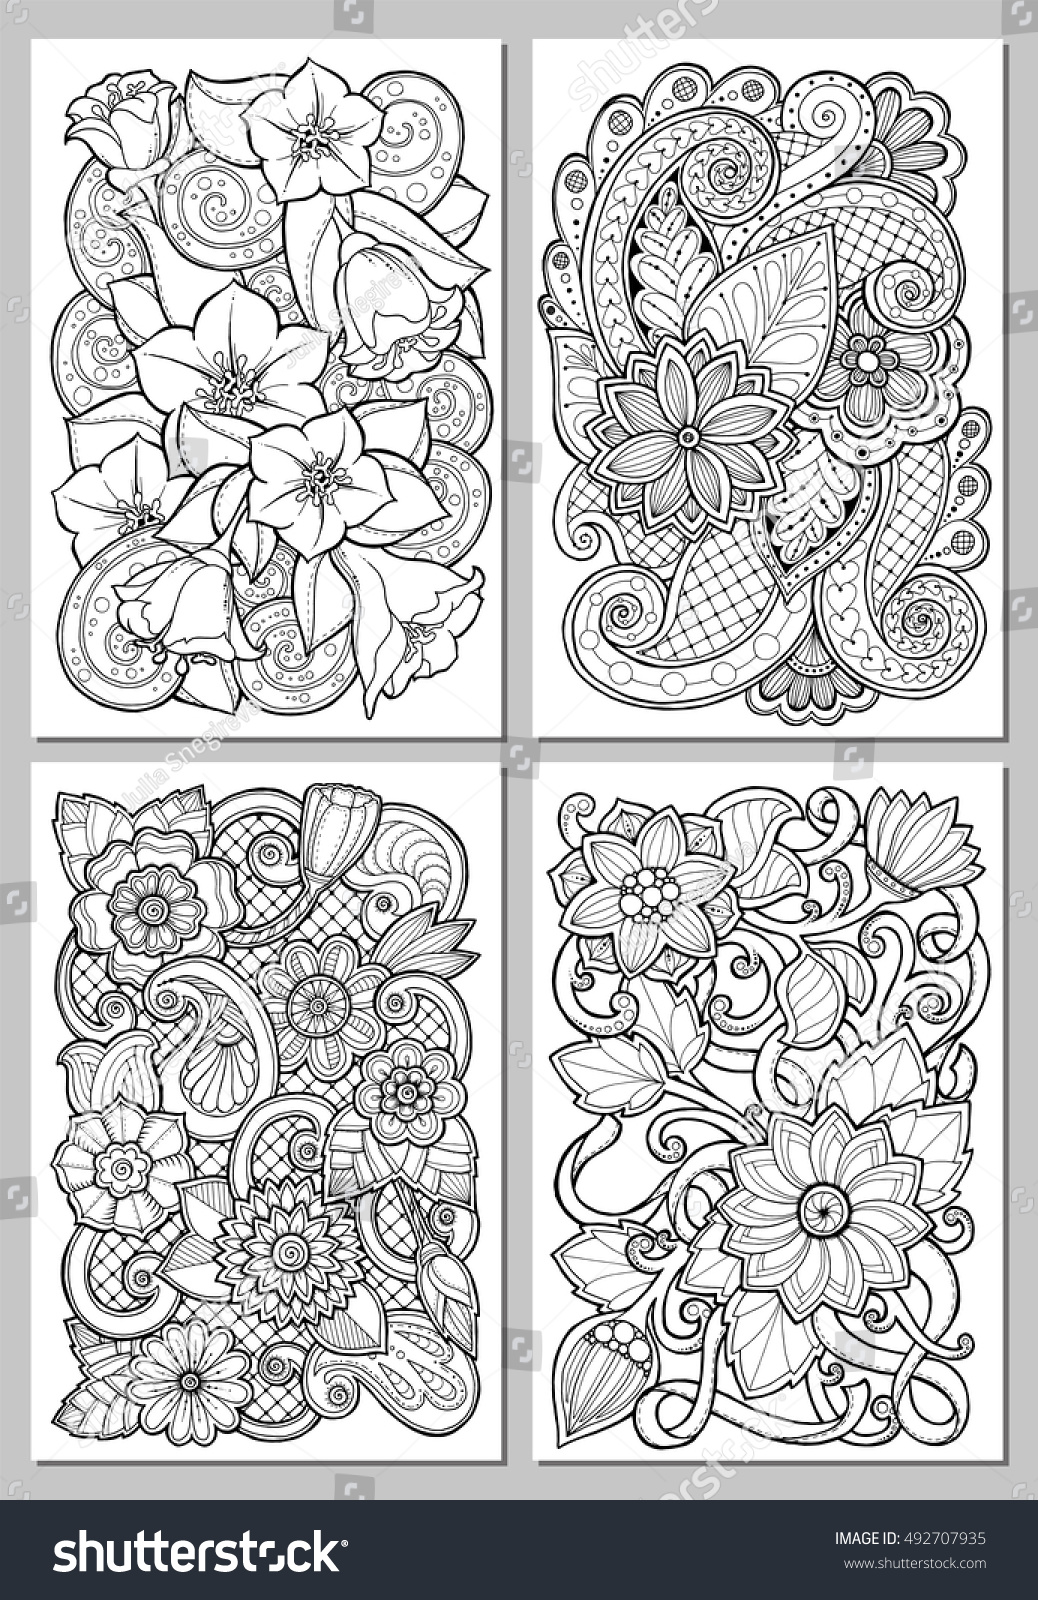 Greeting cards abstract flowers pages adult stock vector royalty greeting cards with abstract flowers pages for adult coloring book vintage hand drawn design m4hsunfo